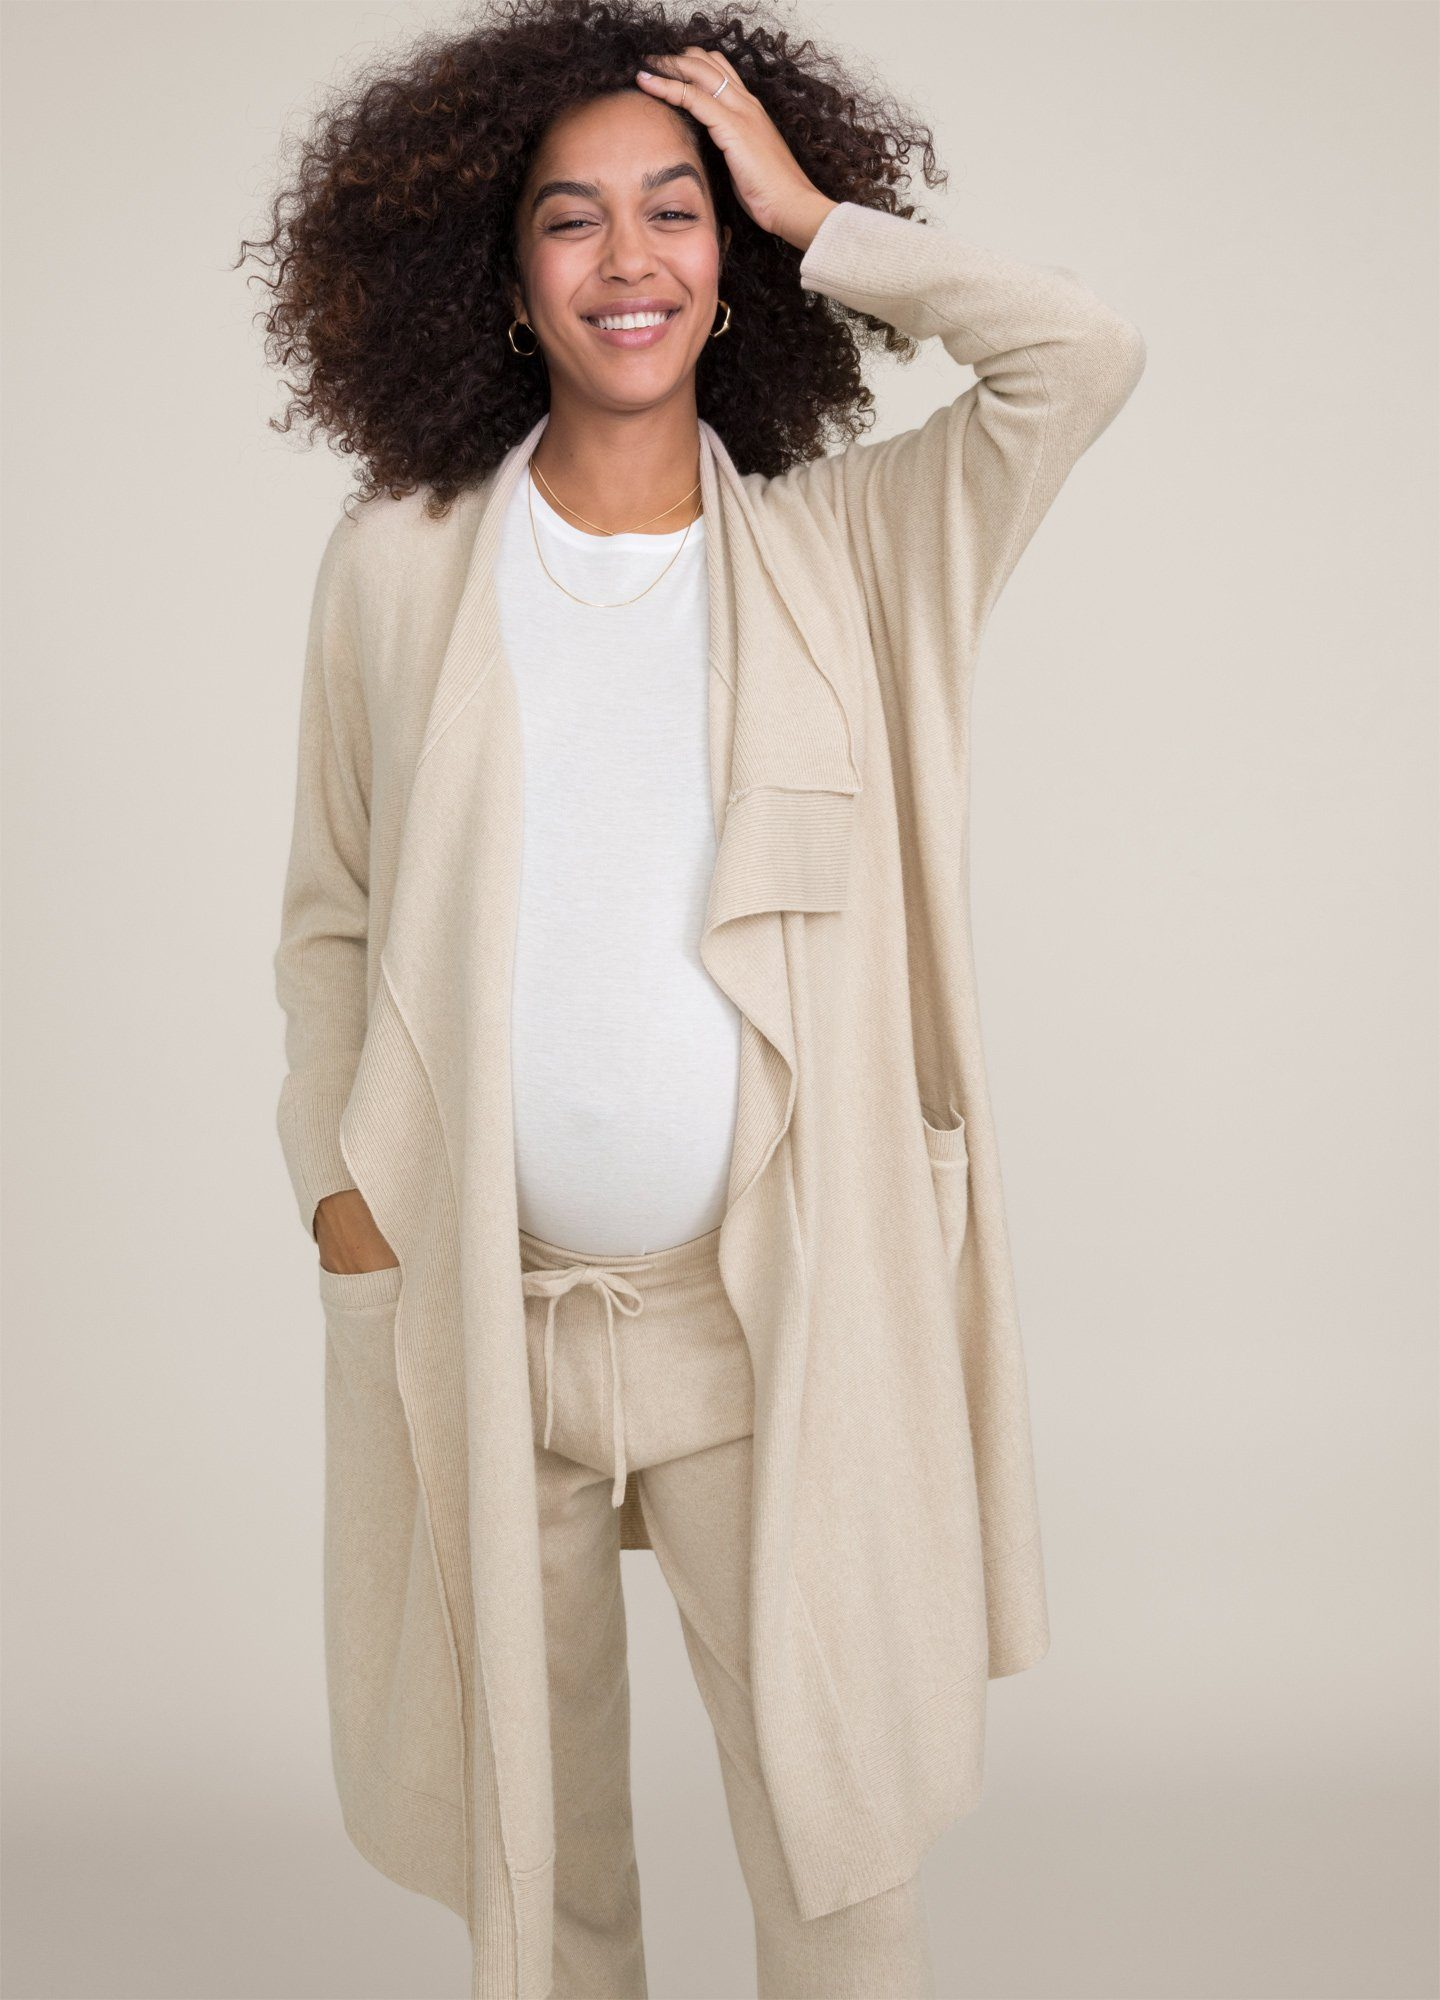 HATCH Maternity The Airplane Cardigan, wheat, Size O/S